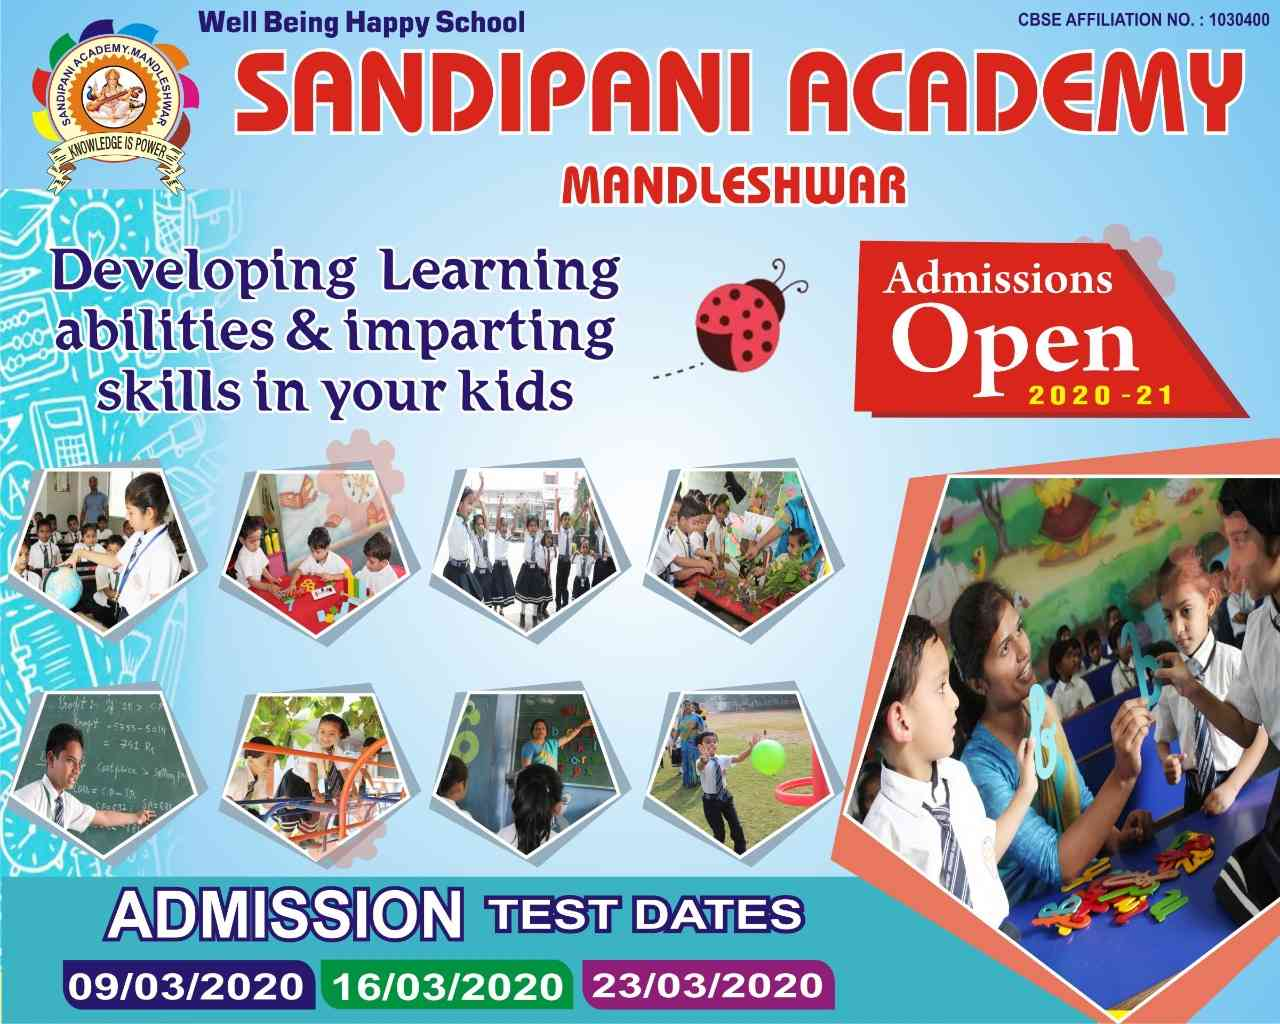 ADMISSIONS OPEN SESSION 2020-21